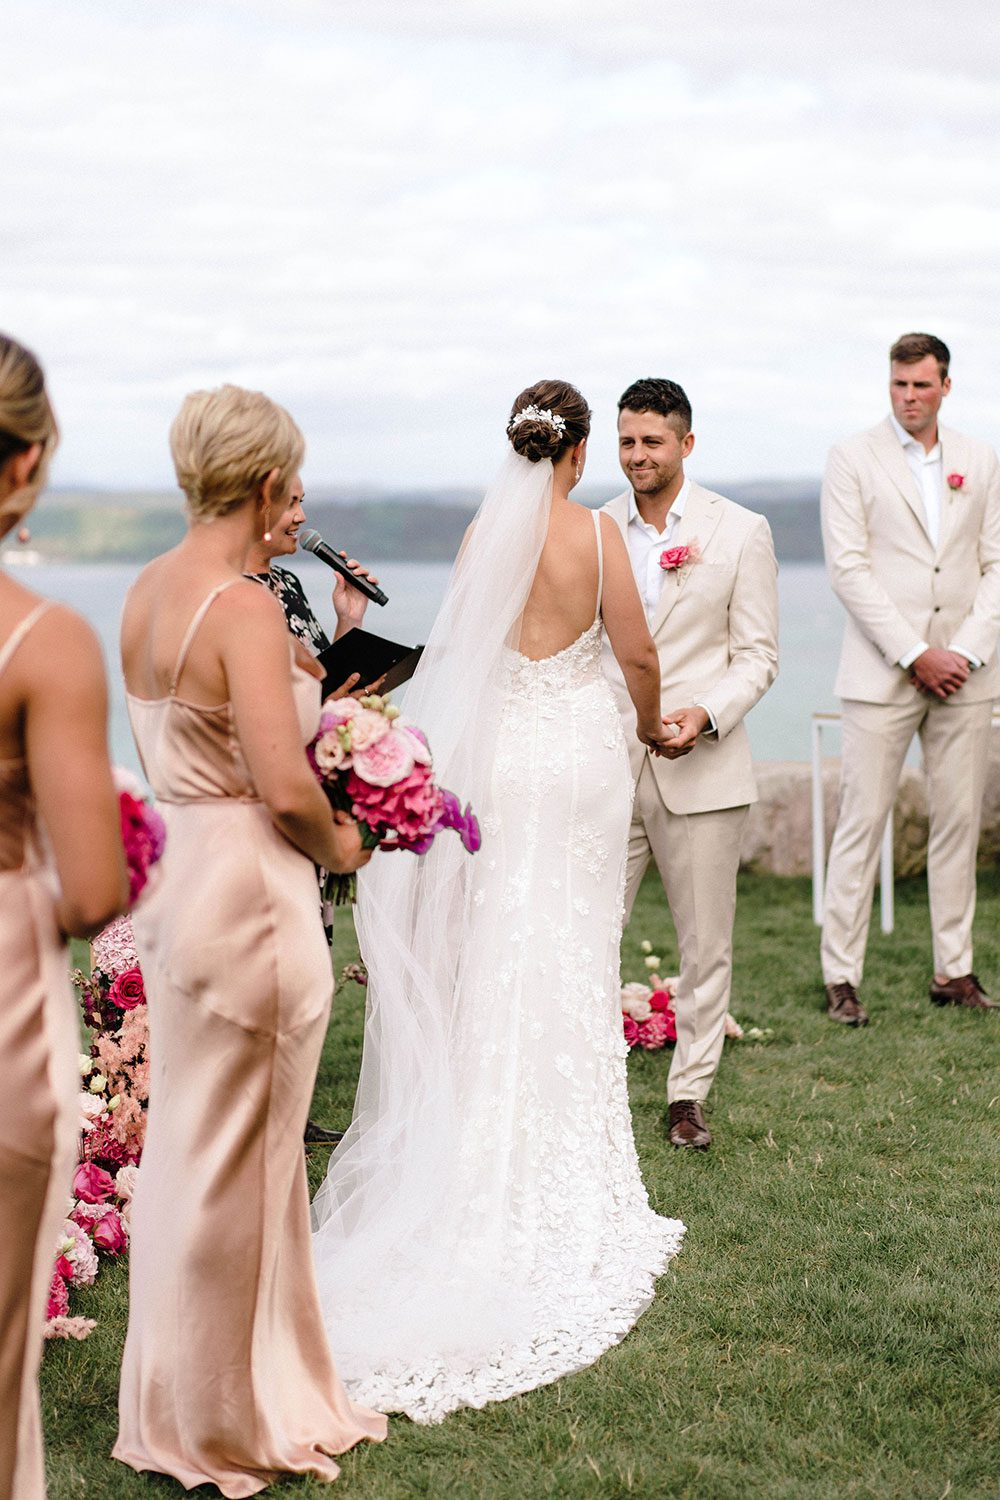 Bride wears bespoke E'More lace gown with boned bodice with hand beaded flower applique and full lace train by Auckland wedding dress maker Vinka designs - with groom at alter